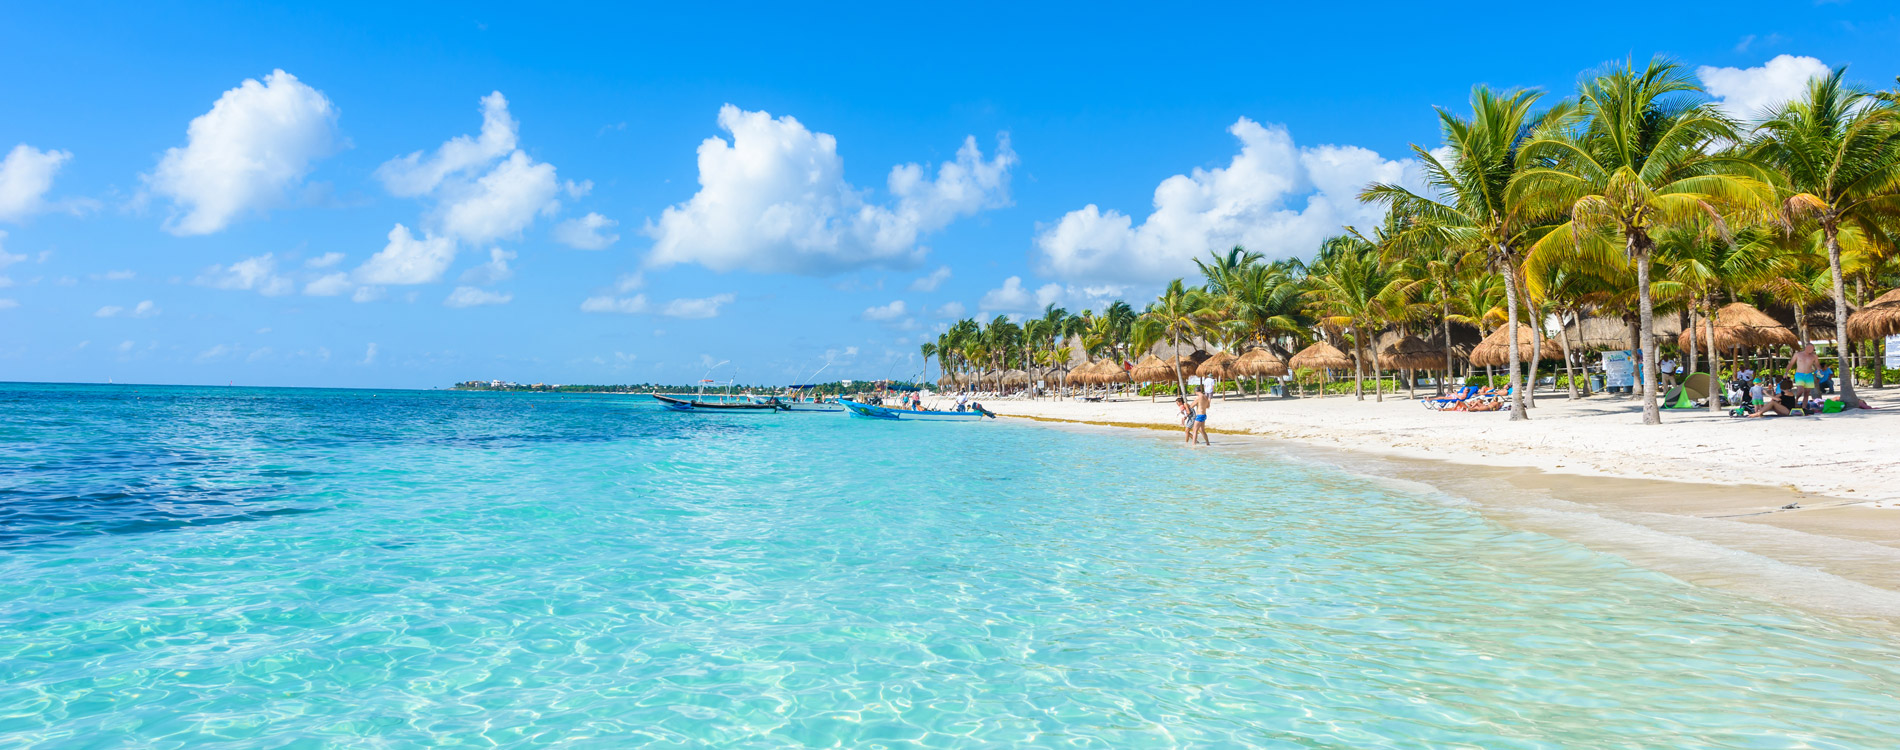 Best Hotels In Cancun For Families